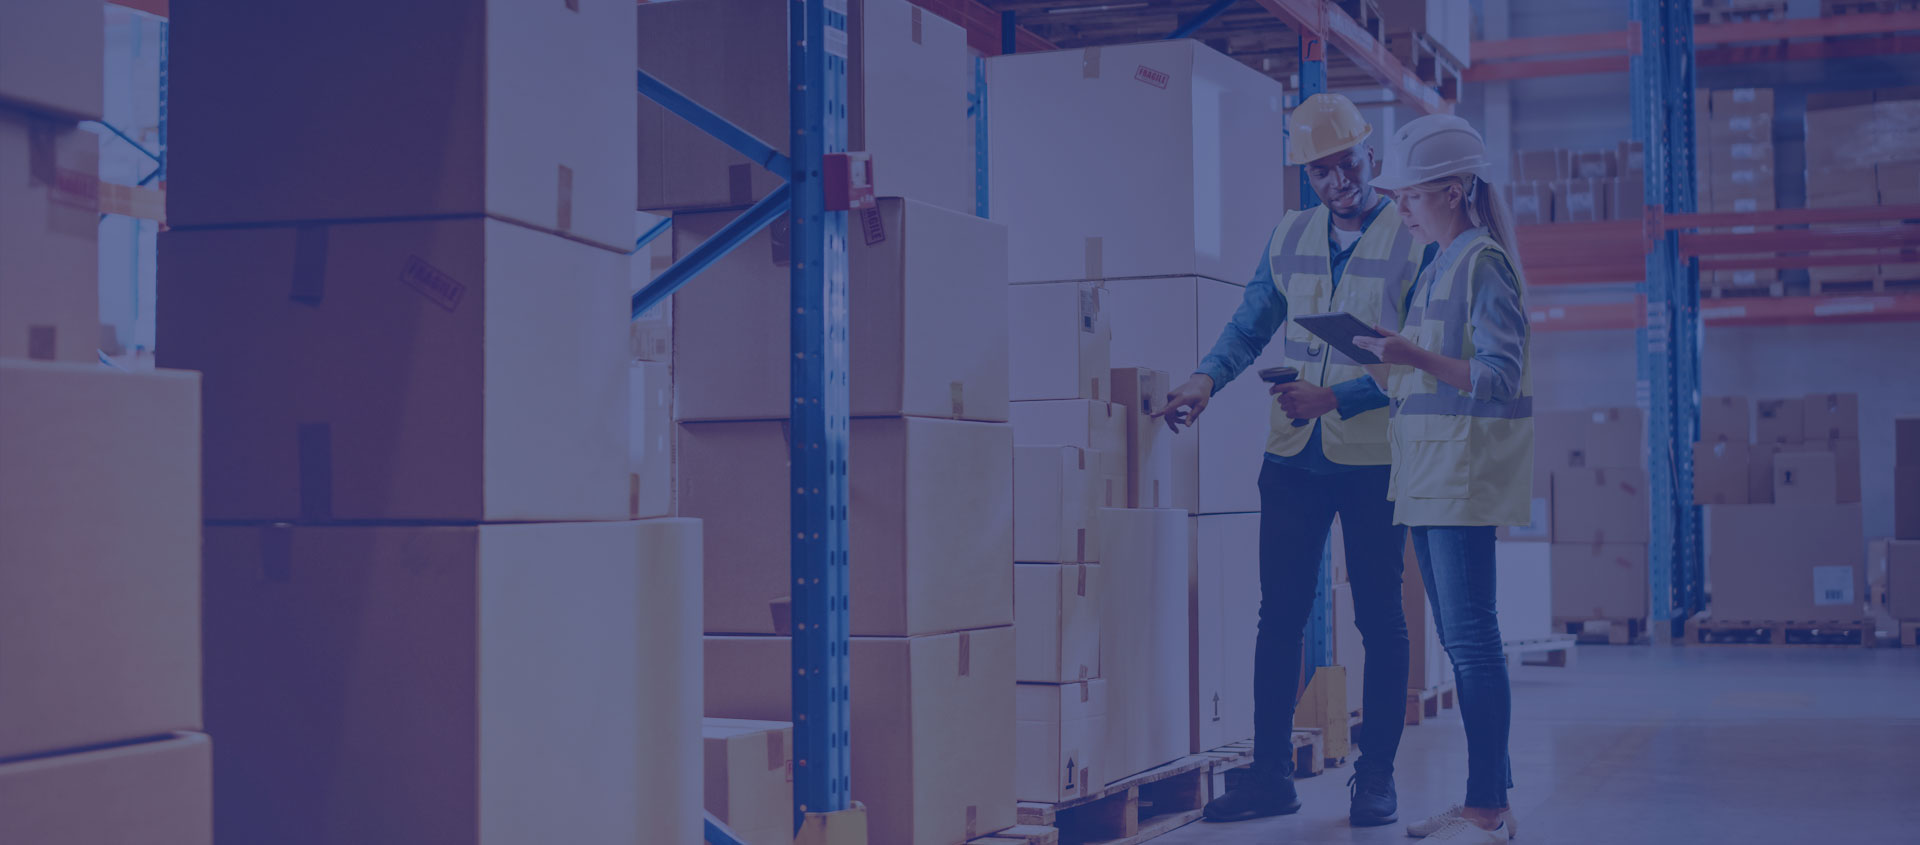 The #1 Integrated Warehouse management, route delivery and DSD software